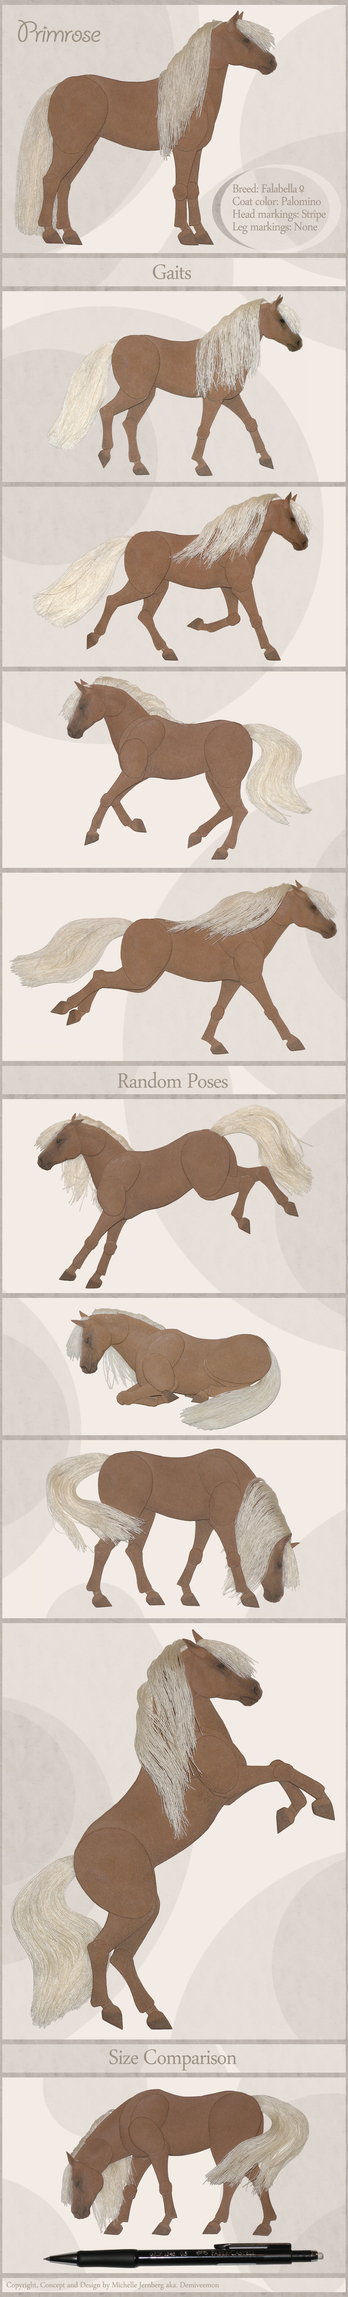 Hidden Talent - Mobile Horses by demiveemon